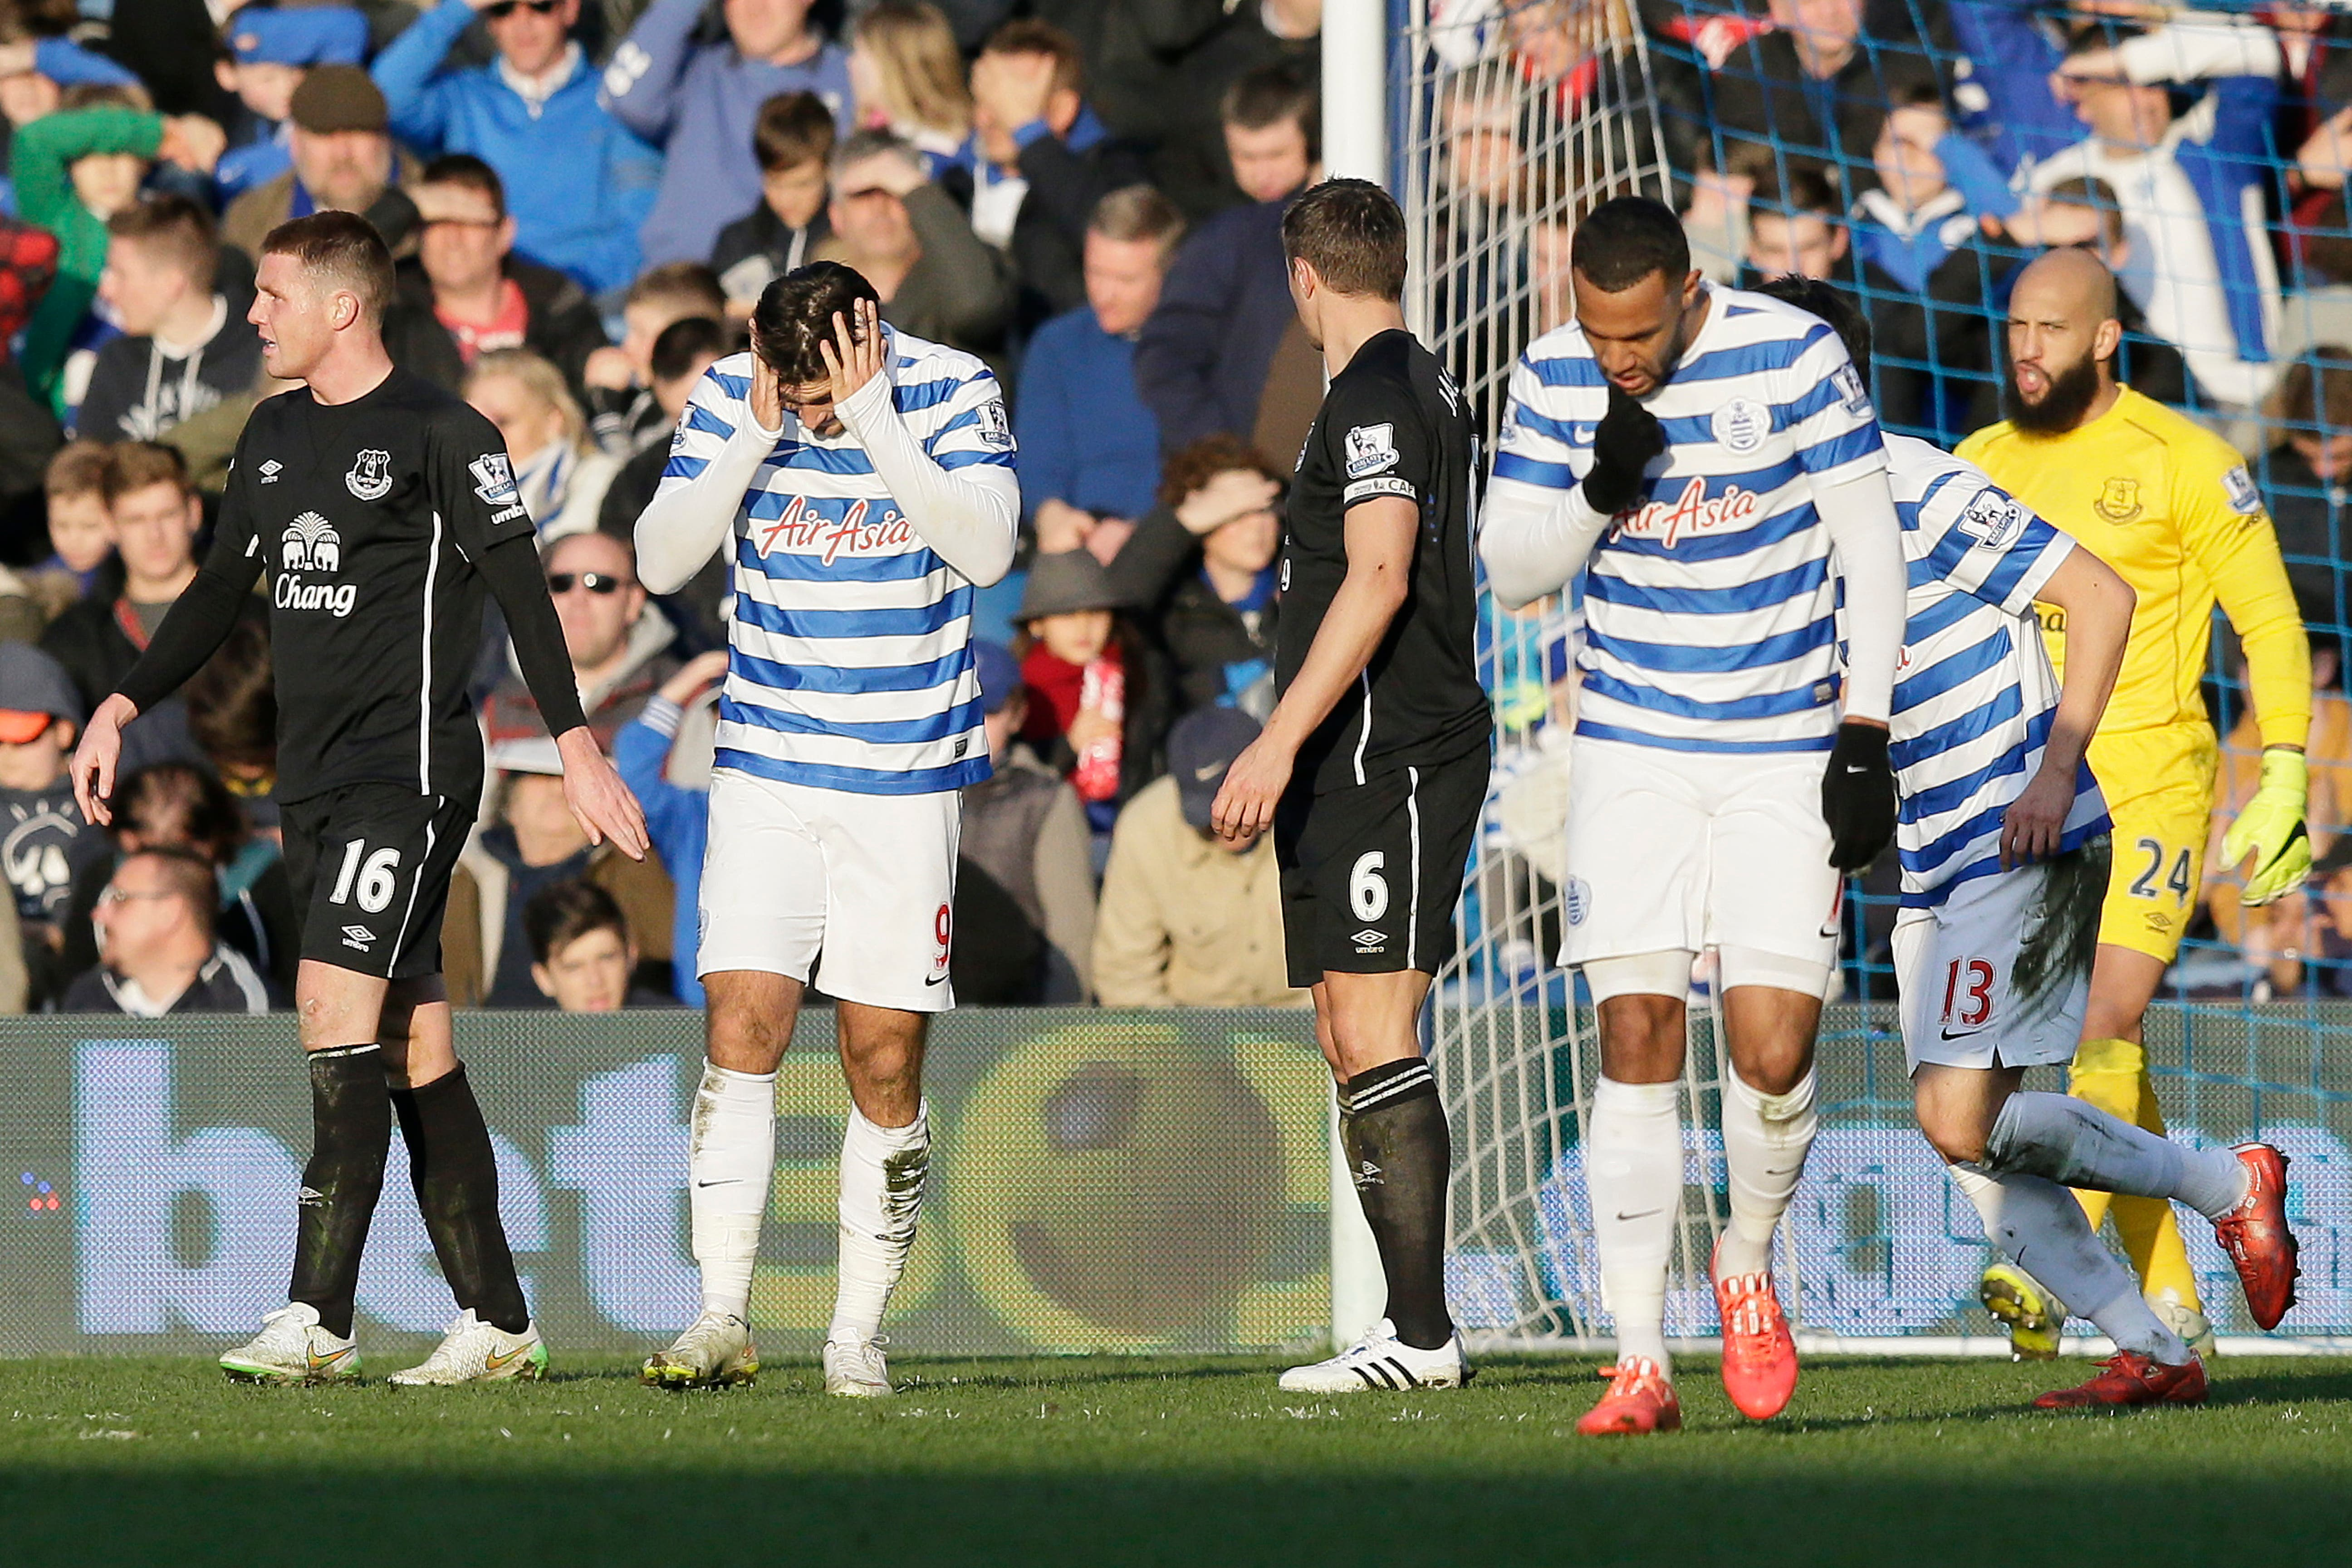 Queens Park Rangers' Charlie Austin, second left, and Queens Park Rangers' Matt Phillips look dejected after a missed chance during the English Premier League soccer match between QPR and Everton at Loftus Road Stadium, London, Sunday, March 22, 2015. (AP Photo/Tim Ireland)